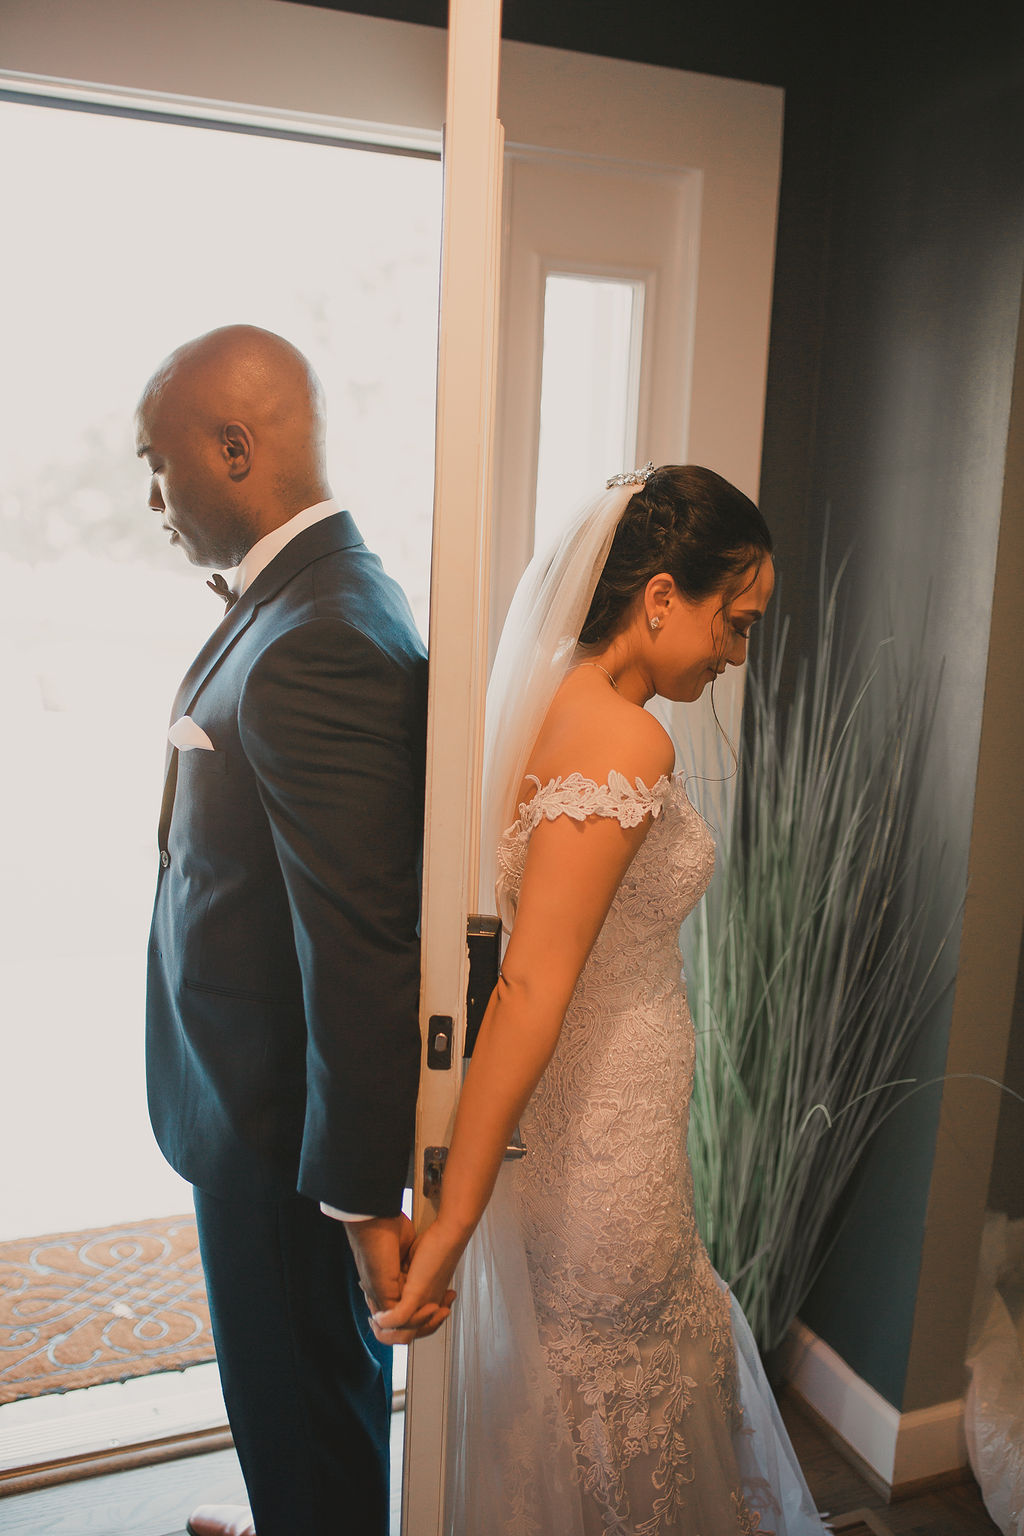 Wedding first touch: Romantic Outdoor Wedding at Reunion Stay